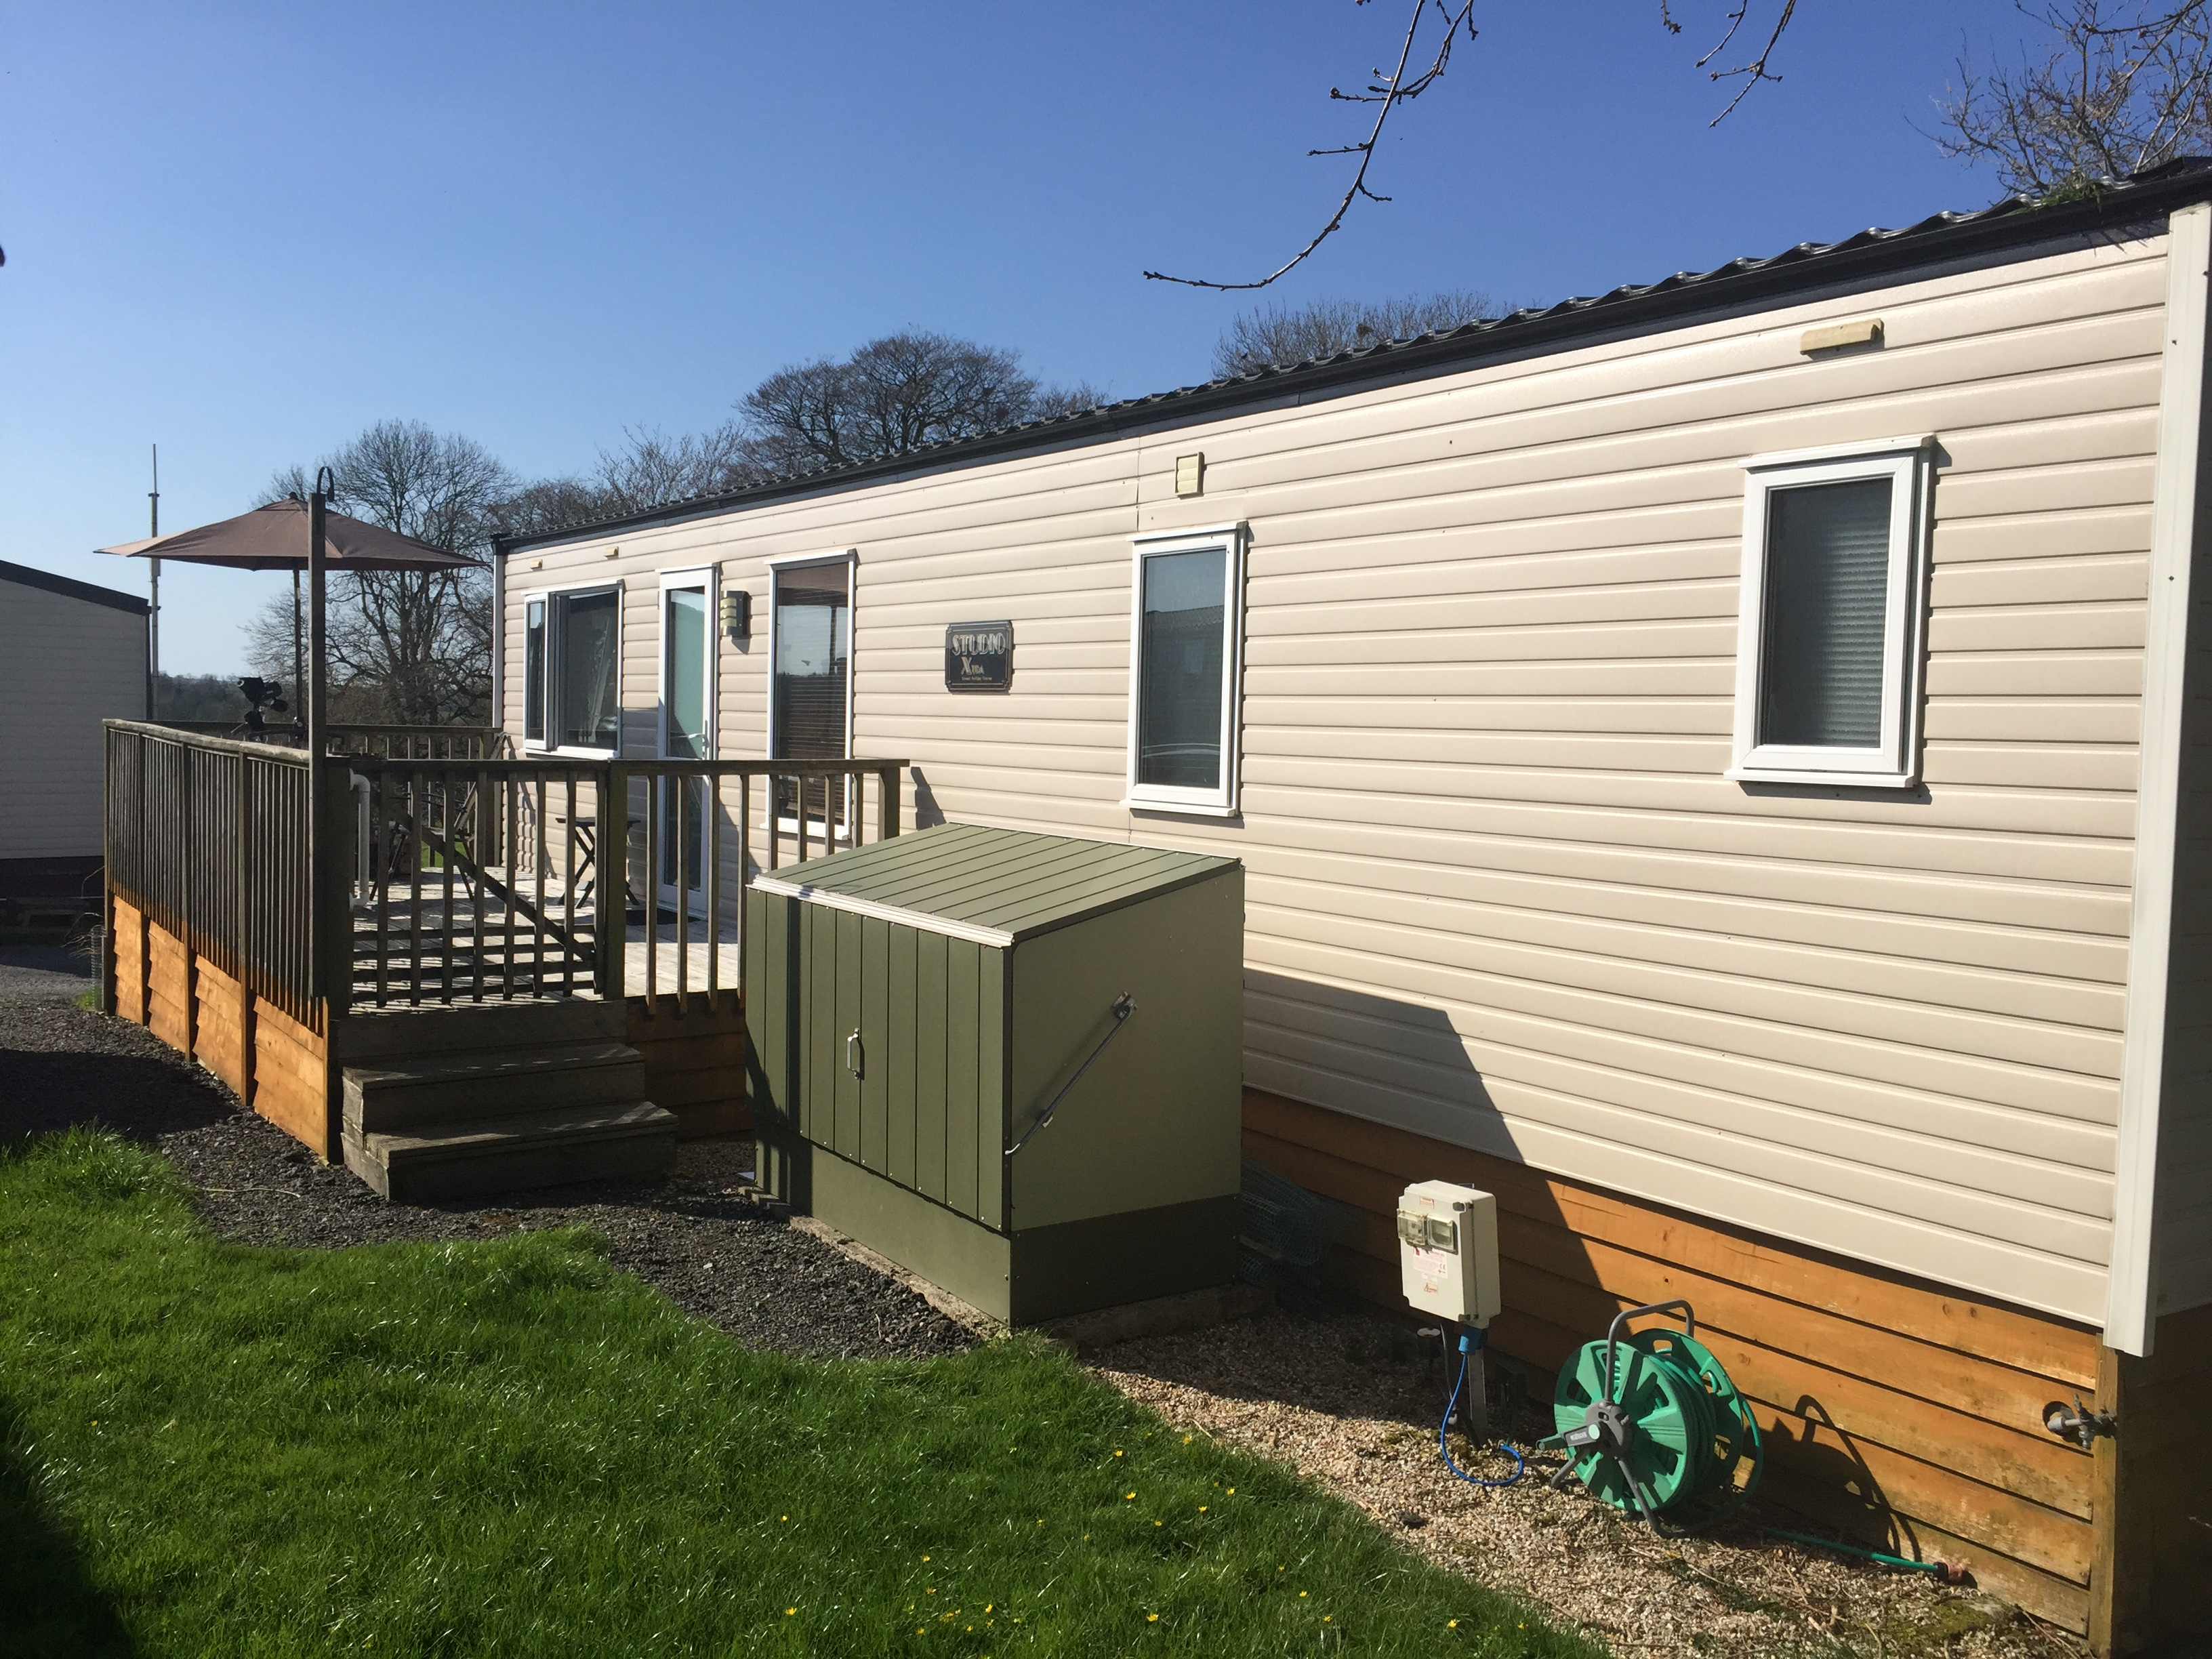 The 2007 Cosalt Studio Extra is now ready to view at Smytham Holiday Park in North Devon